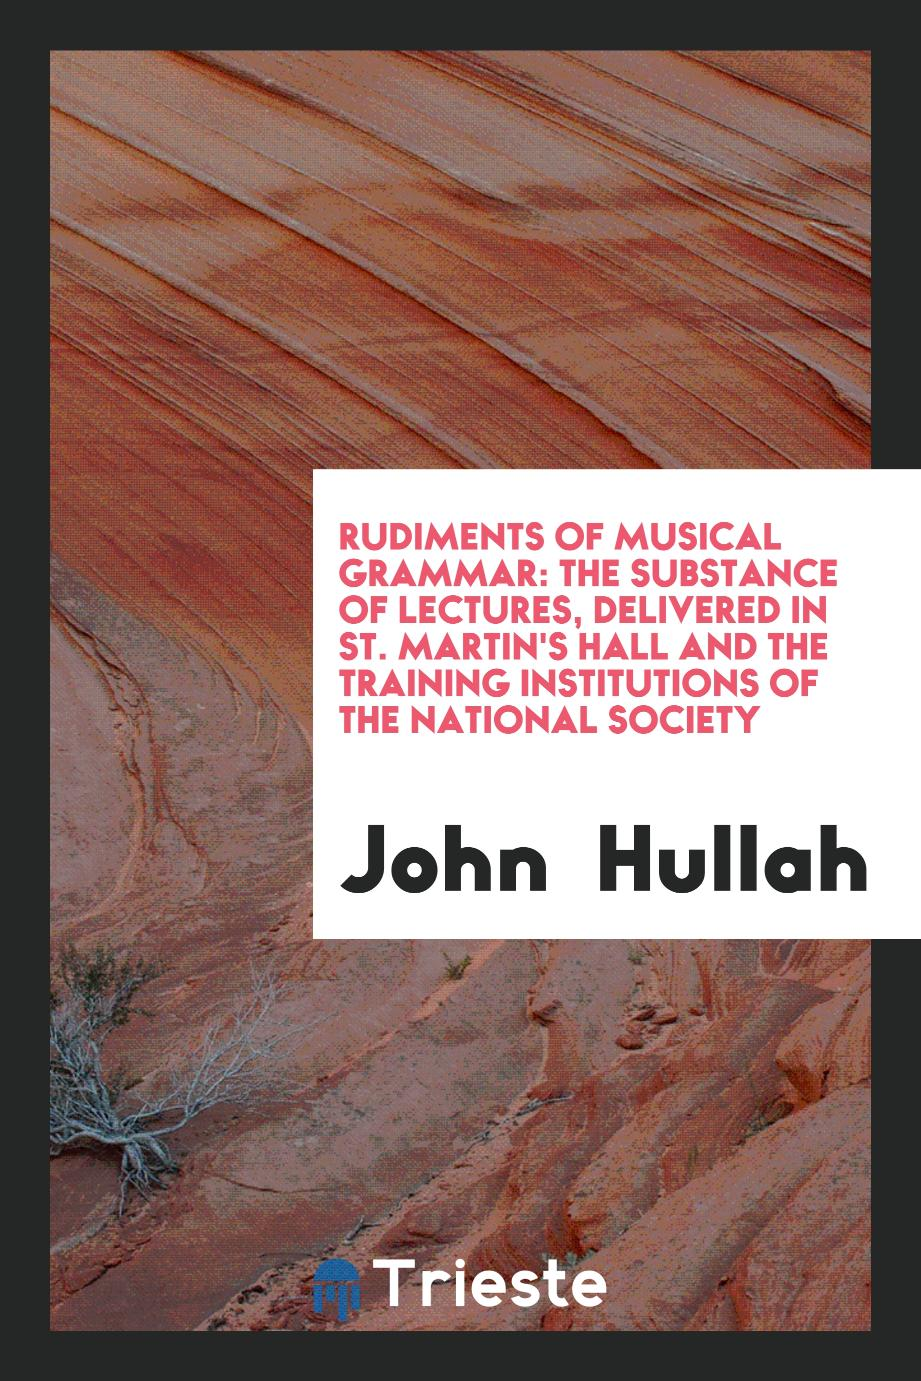 Rudiments of musical grammar: The substance of lectures, Delivered in St. Martin's Hall and The Training Institutions of the National Society